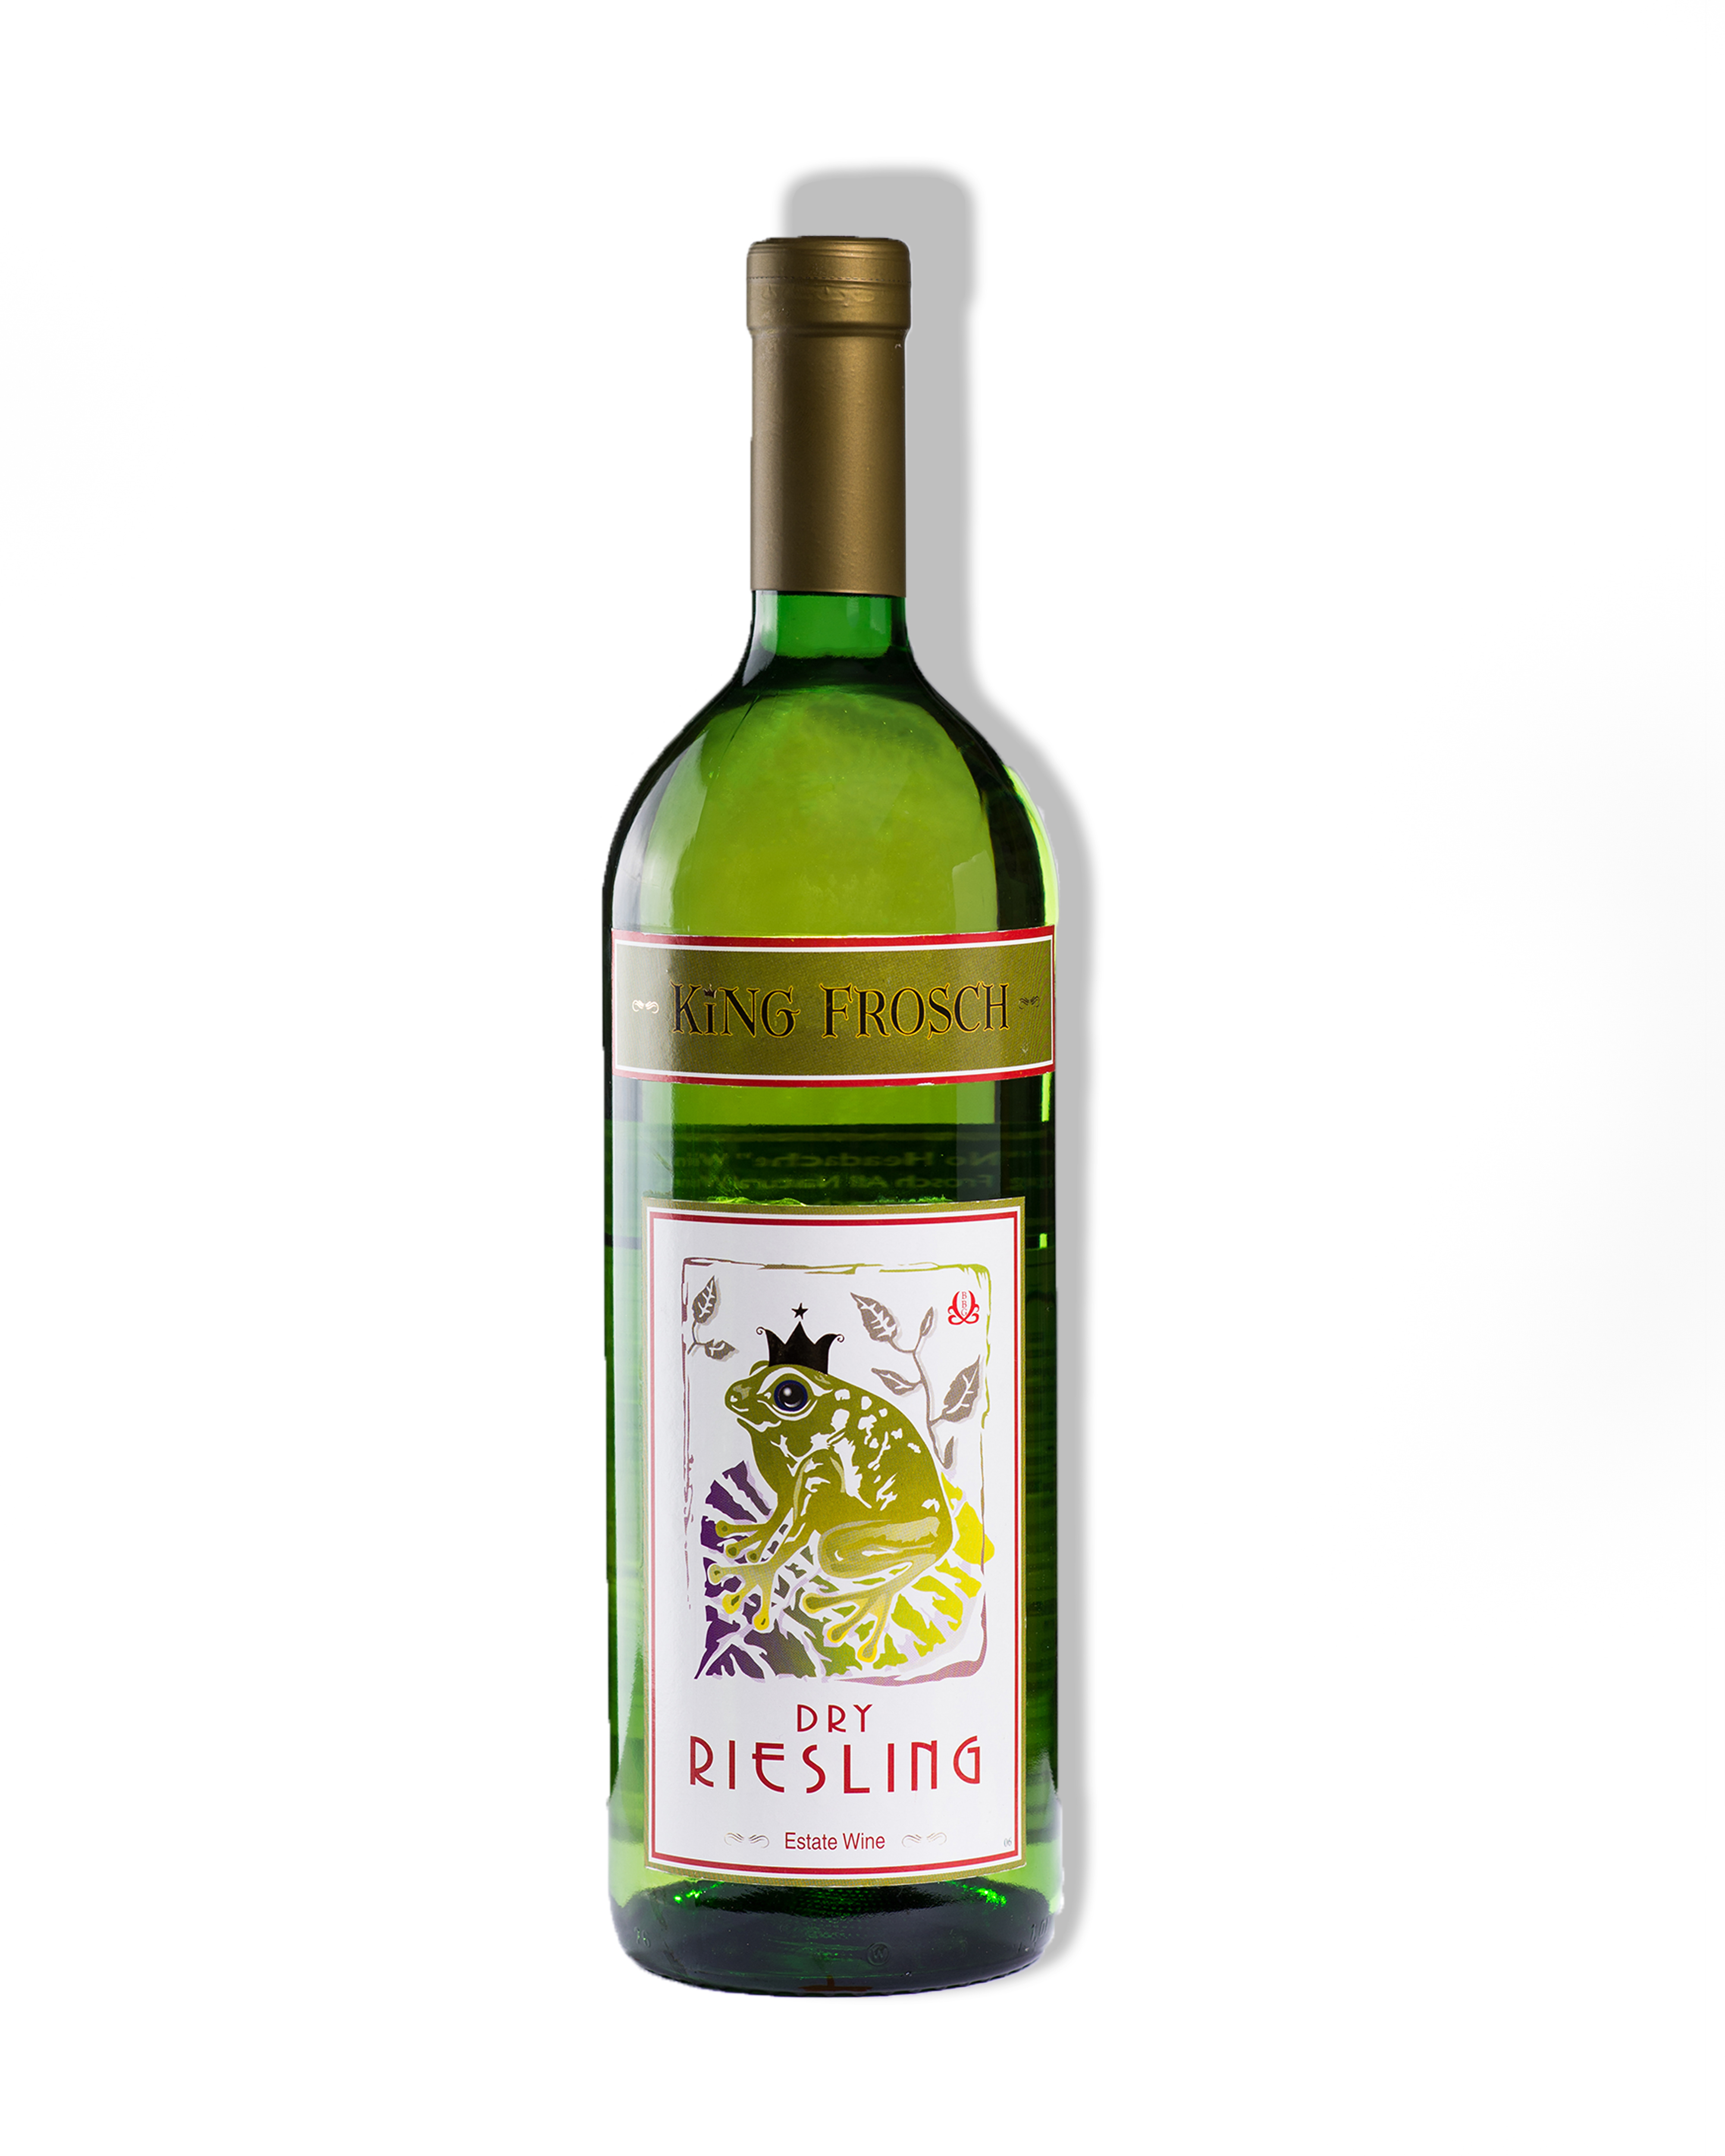 #680 Dry Riesling